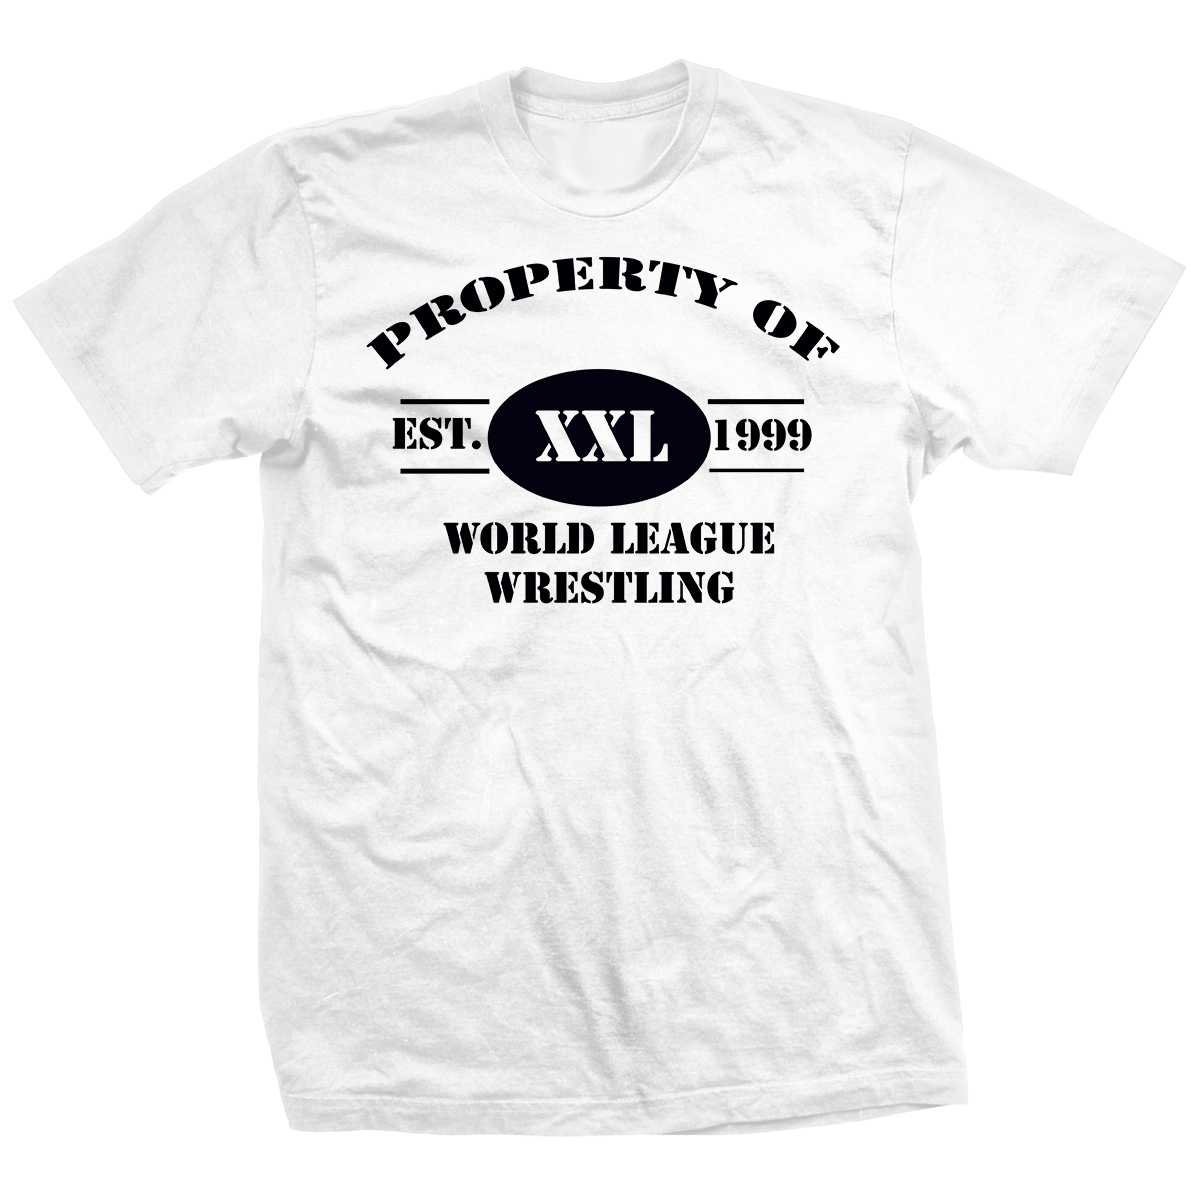 Property of World League Wrestling T-shirt